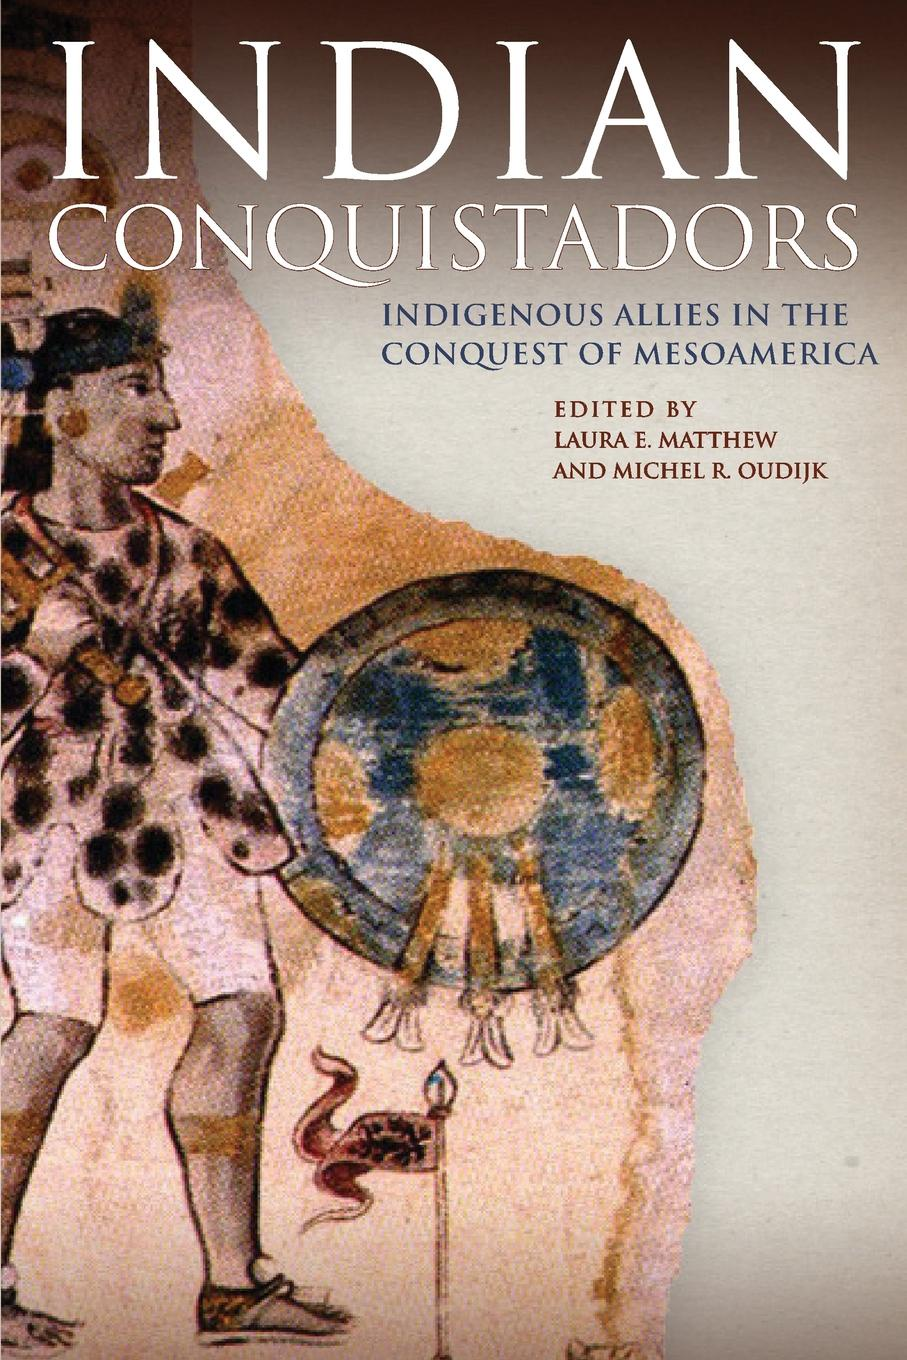 Indian Conquistadors. Indigenous Allies in the Conquest of Mesoamerica robert grant watson spanish and portuguese south america during the colonial period vol 1